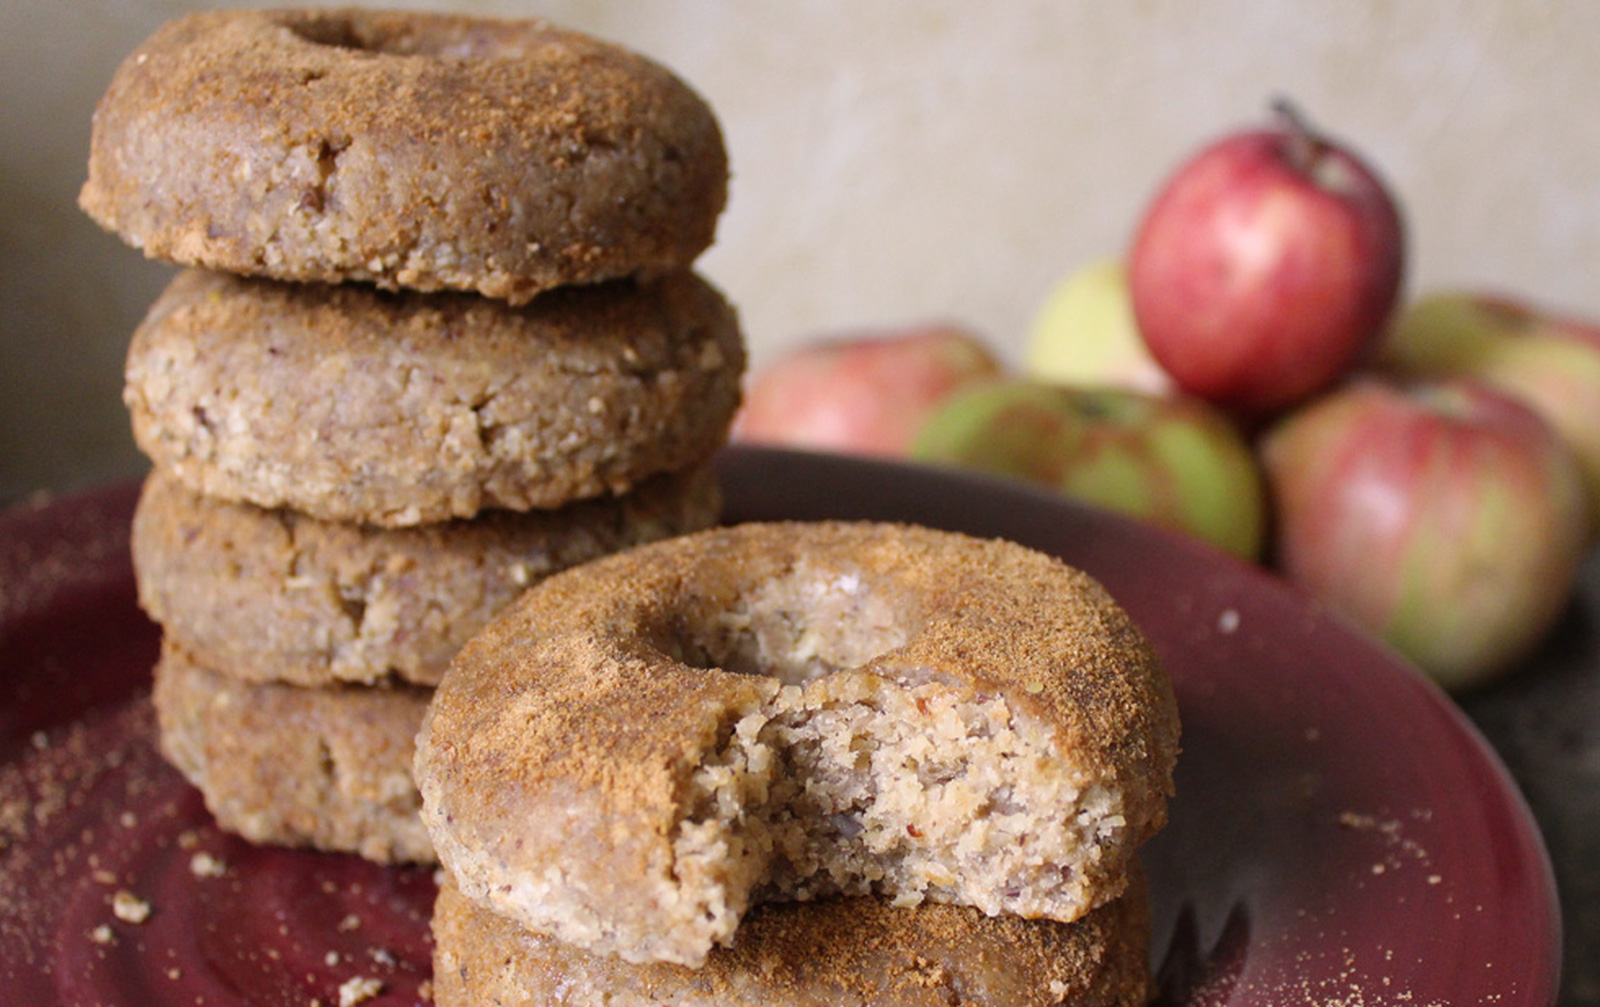 Raw Apple Cider Doughnuts [Vegan, Gluten-Free]